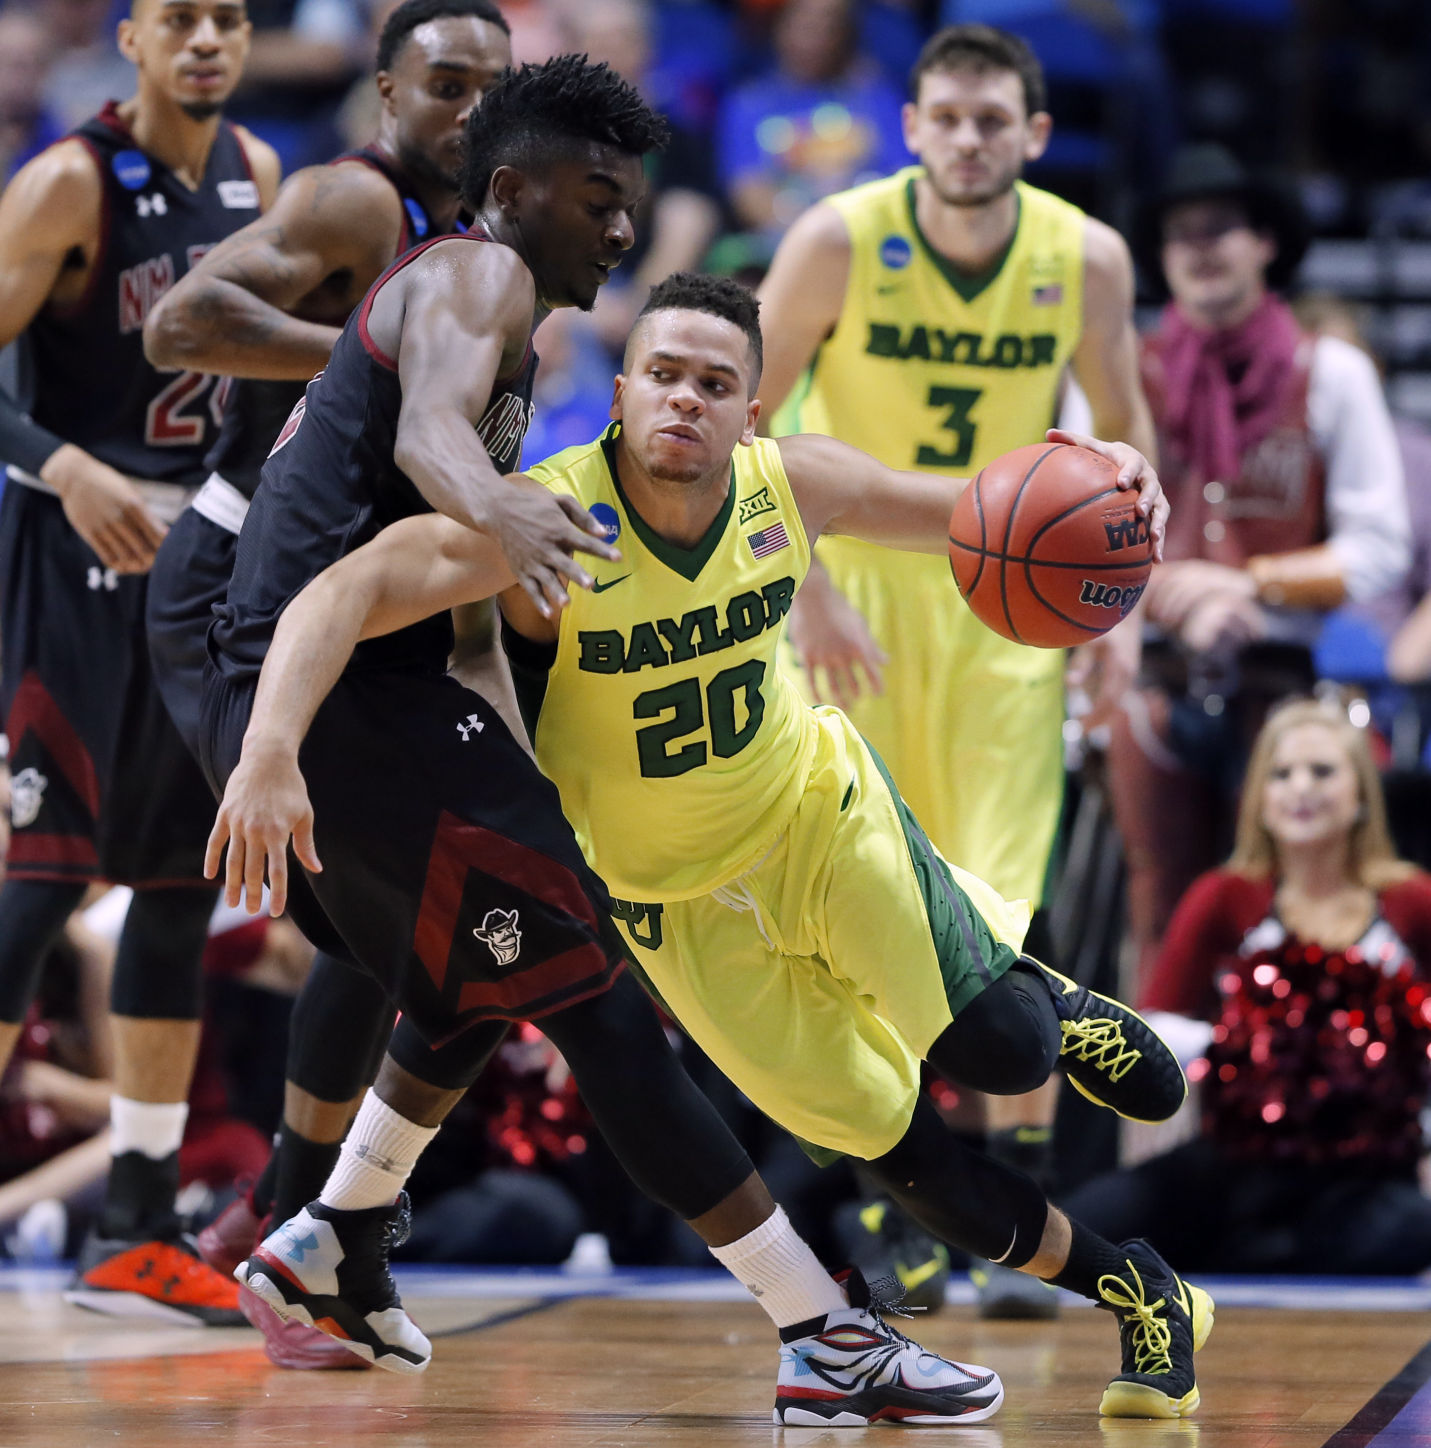 Badgers draw Baylor in Hall of Fame Classic